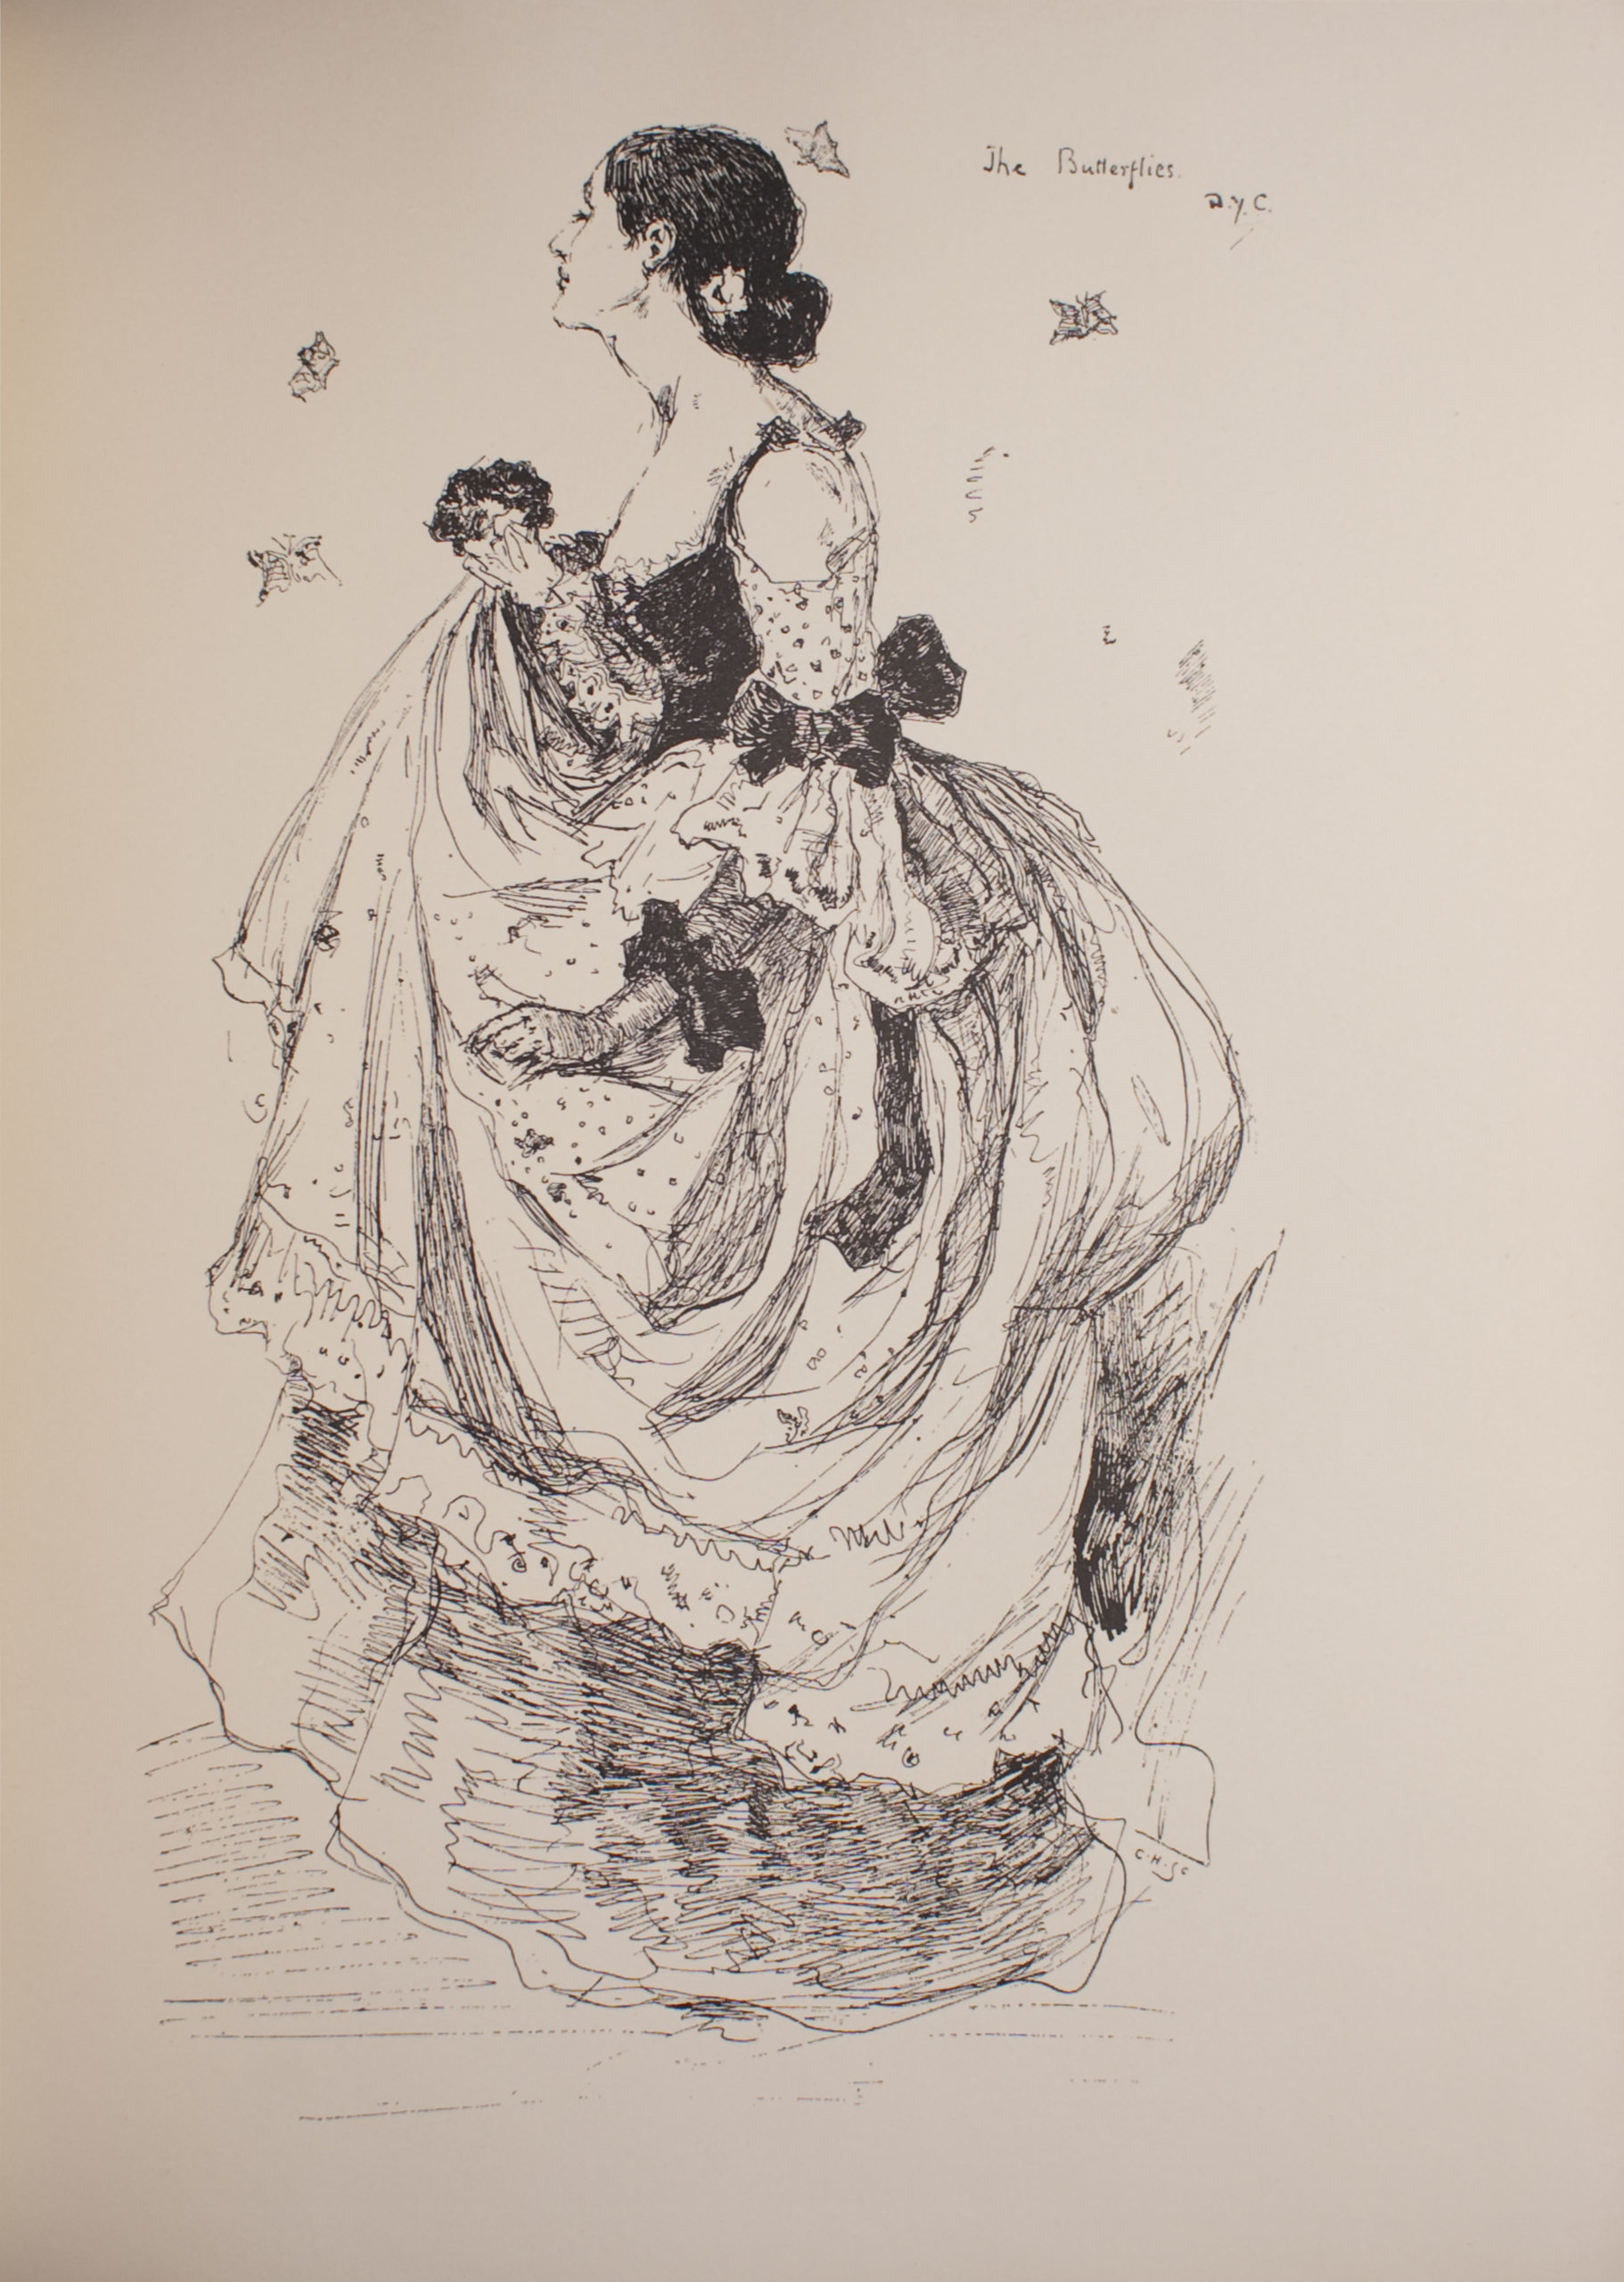 Image is of a woman in full profile She is facing the left with her eyes closed Her dark hair is secured in a bun at the nape of her neck by a piece of jewellery or flower Her dress is full with patterned ¾ off the shoulder sleeves There are dark bows at the woman's elbow and wrist and at the back of her skirt The neckline of the dress is low and ruffled The woman is holding her skirt and a bouquet in her right hand There are four butterflies flying around the woman The image title and artist signature are in the upper right hand corner the engraver's name is in the lower right hand corner beneath the woman's hemline The image is open and undefined The image is vertically displayed